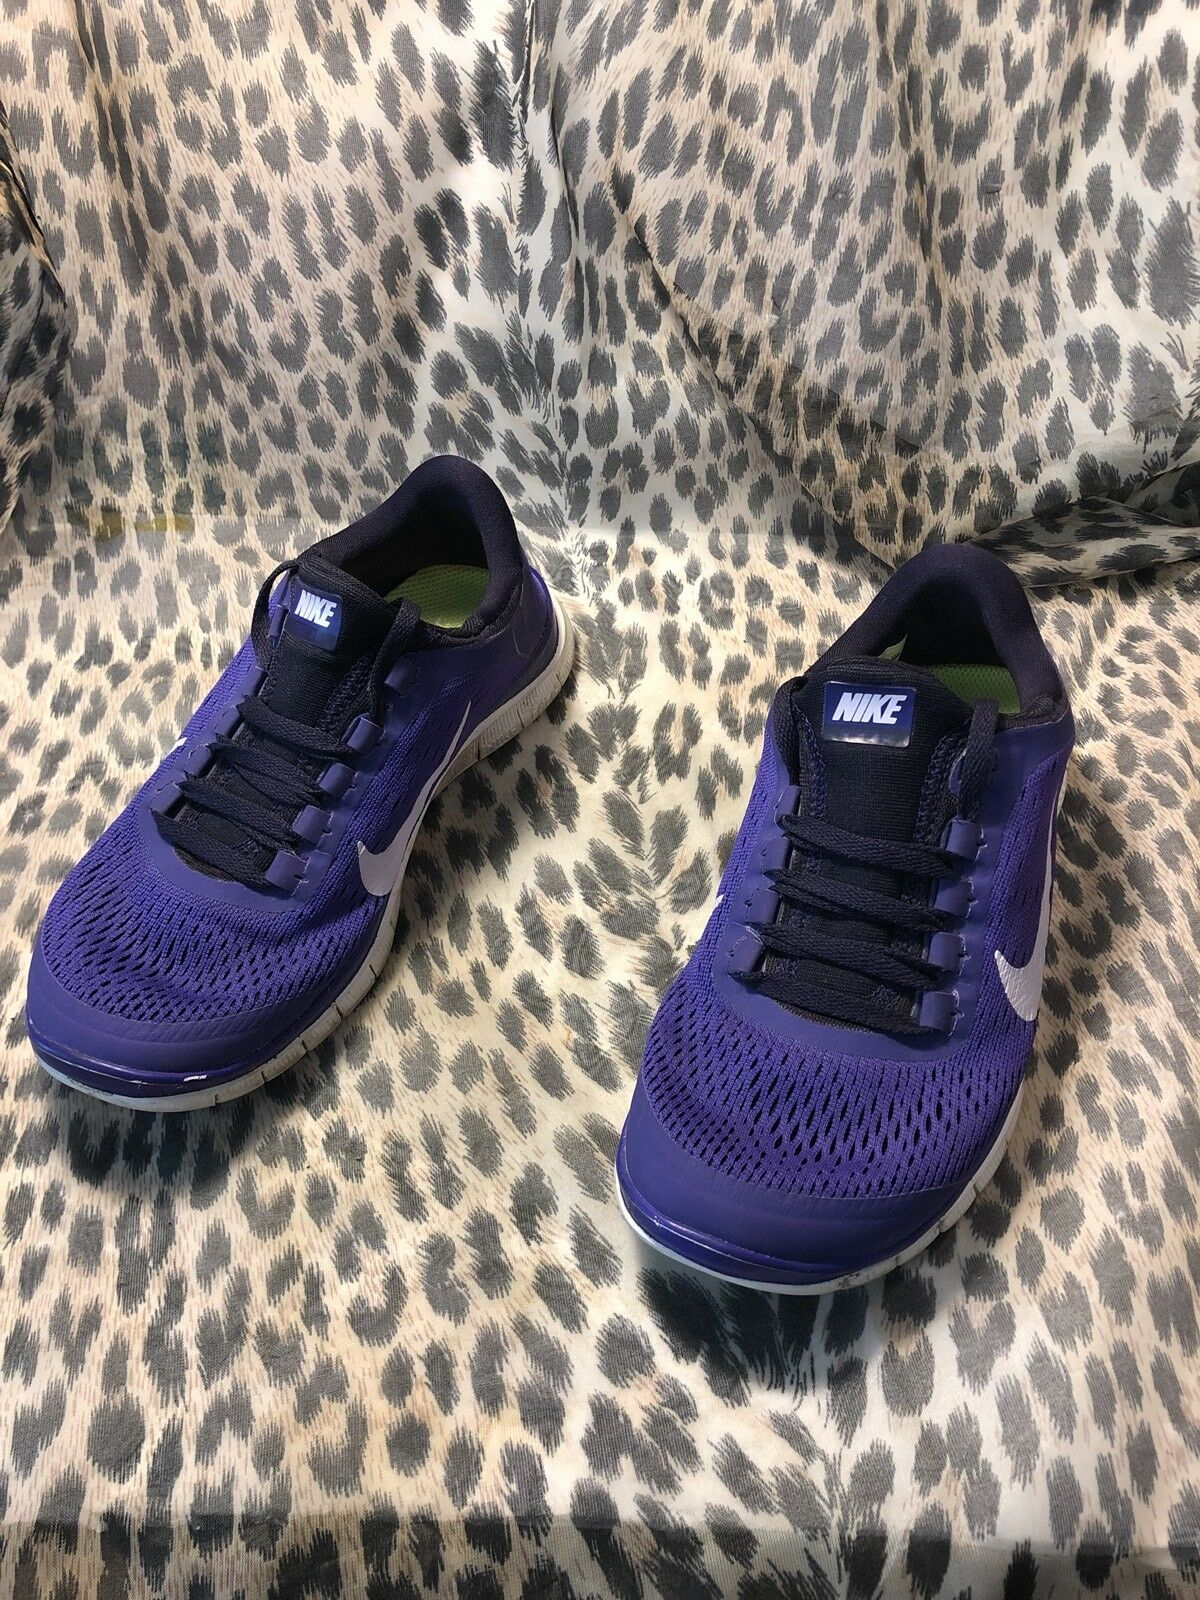 Nike Free 3.0 Womens Running Shoes Violet 580392-303 US Comfortable Comfortable and good-looking